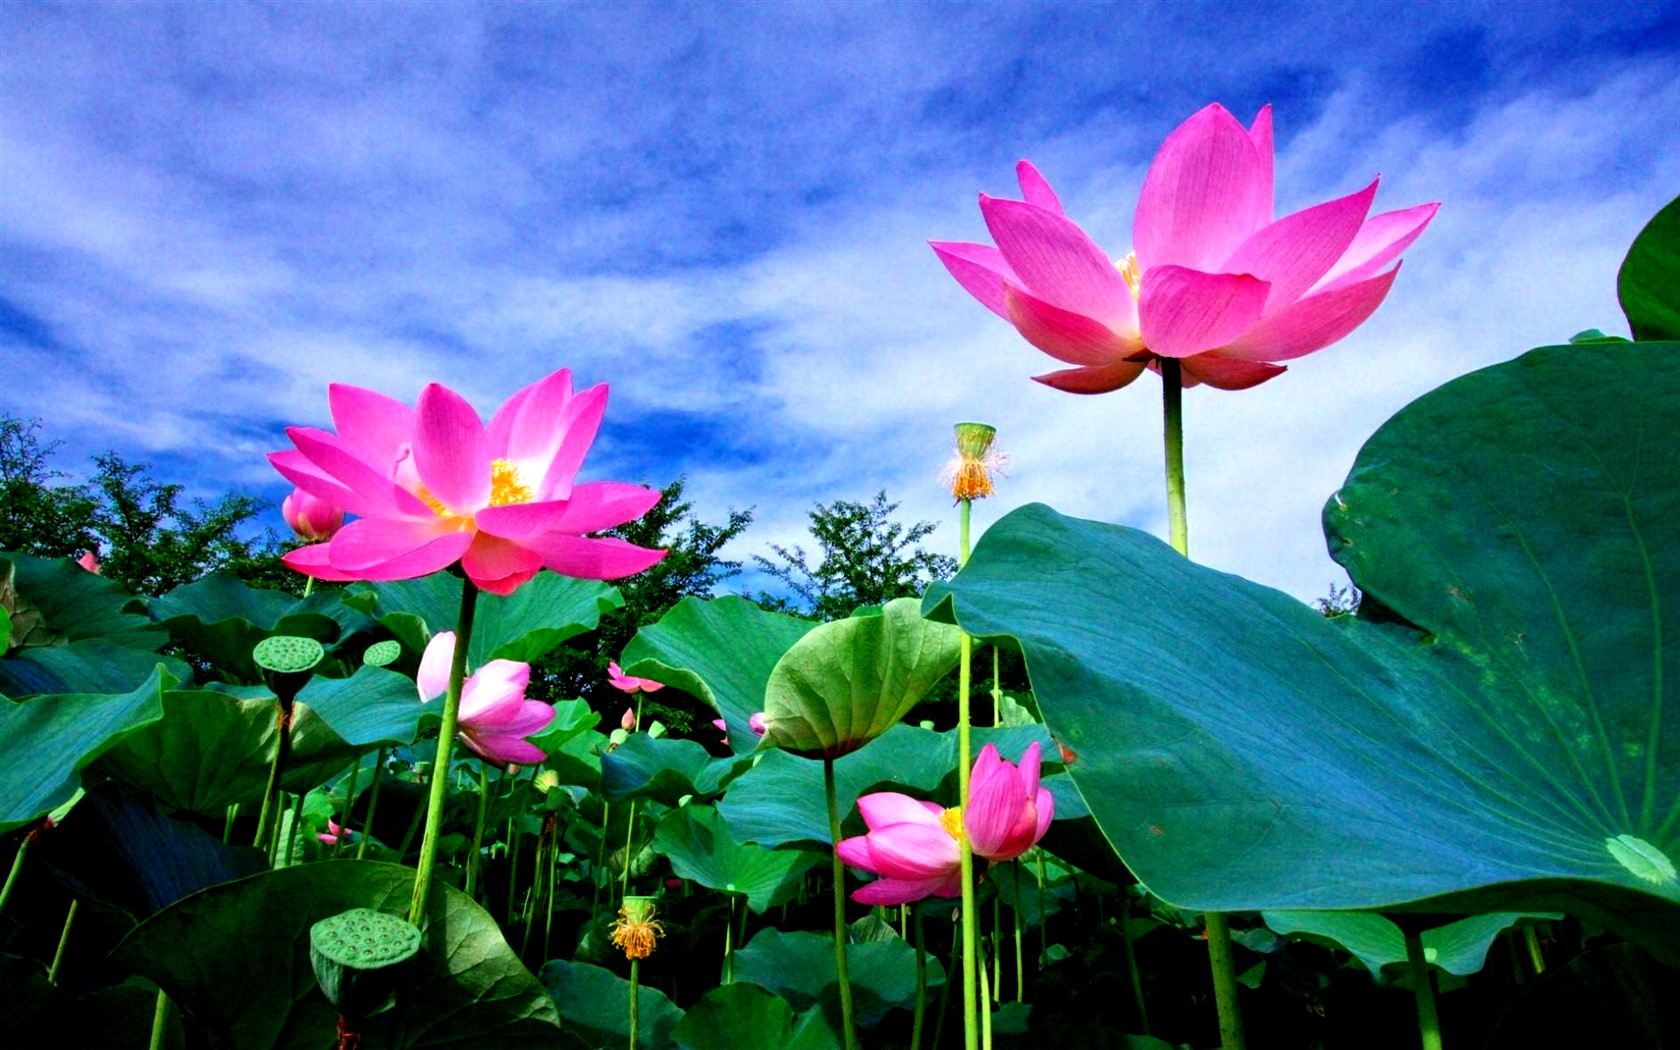 Lotus flower meaning and symbolism mythologian lotus flower in hinduism and the sacred lotus padma izmirmasajfo